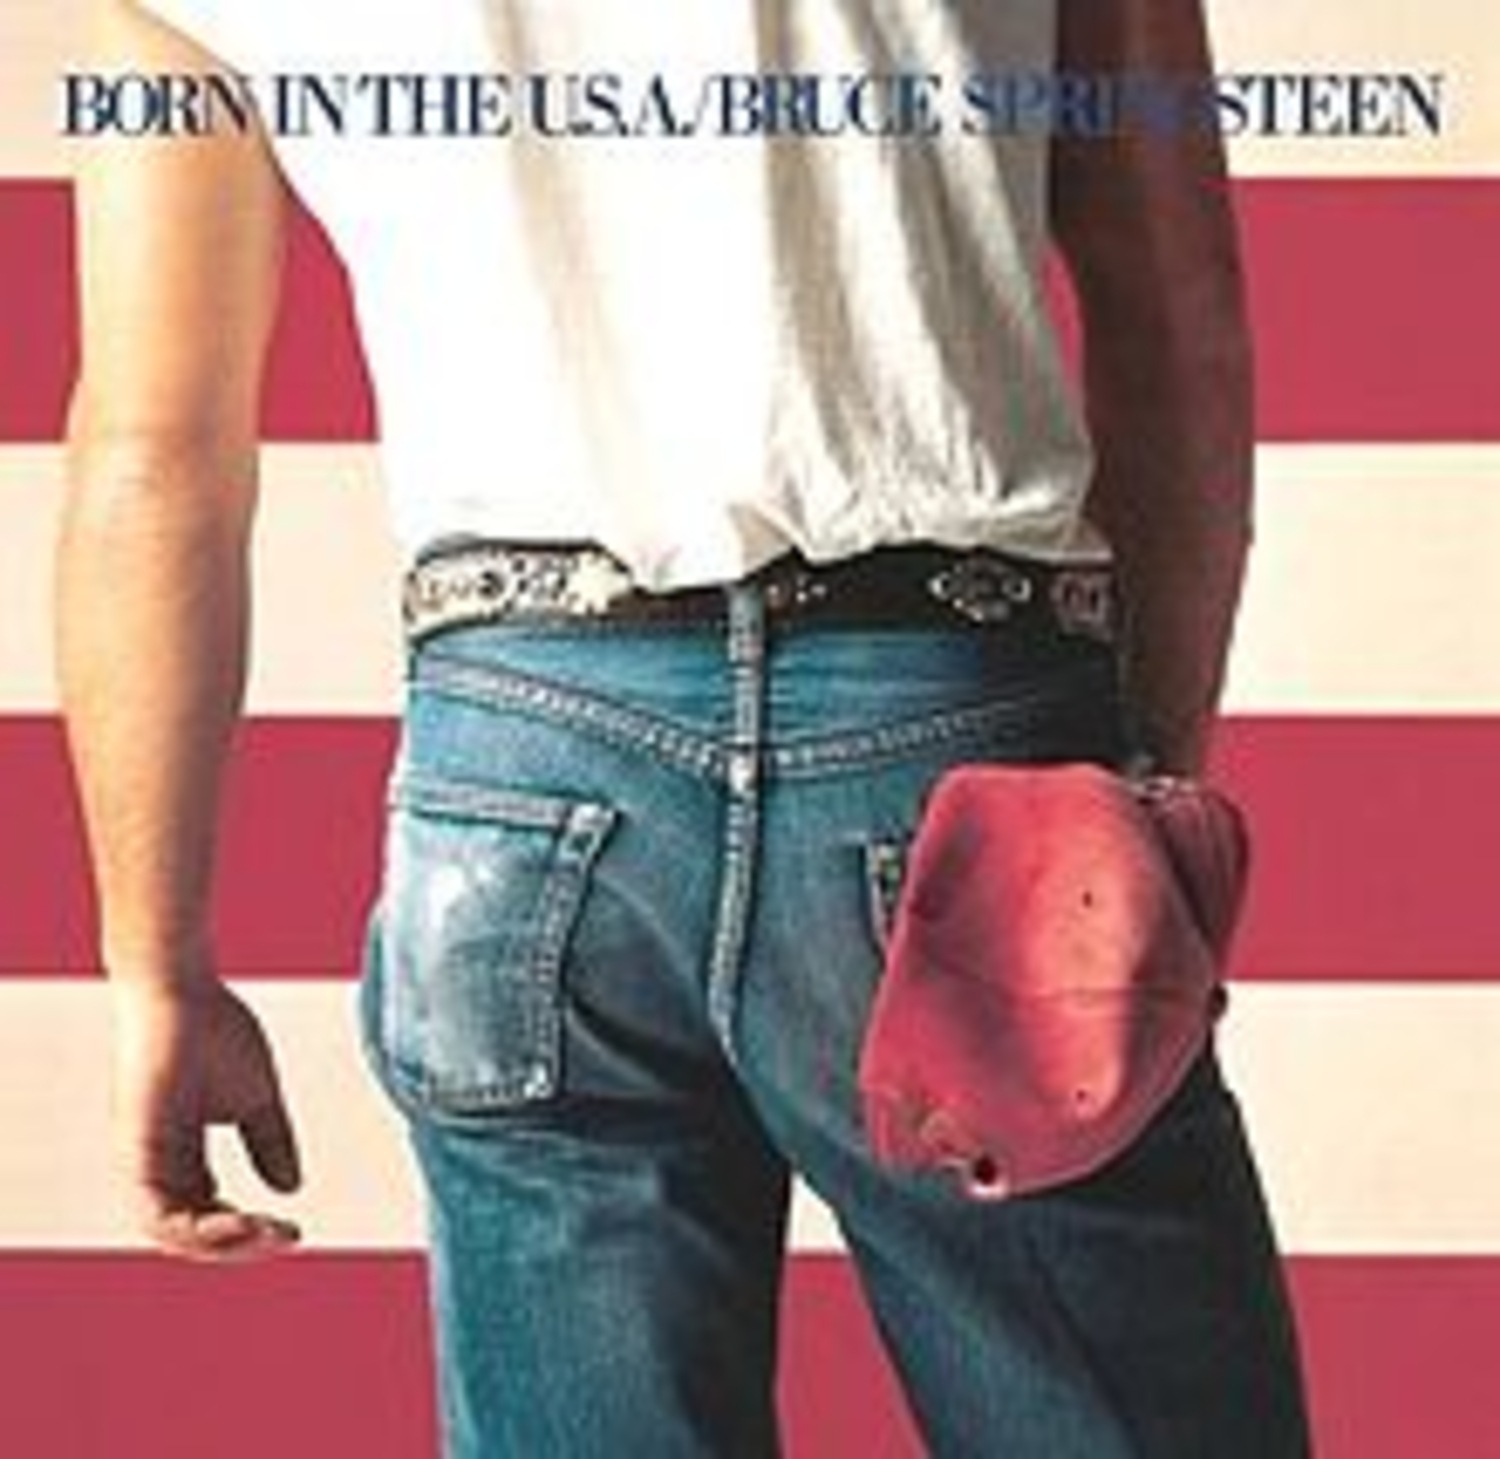 Born in the USA – Bruce Springsteen